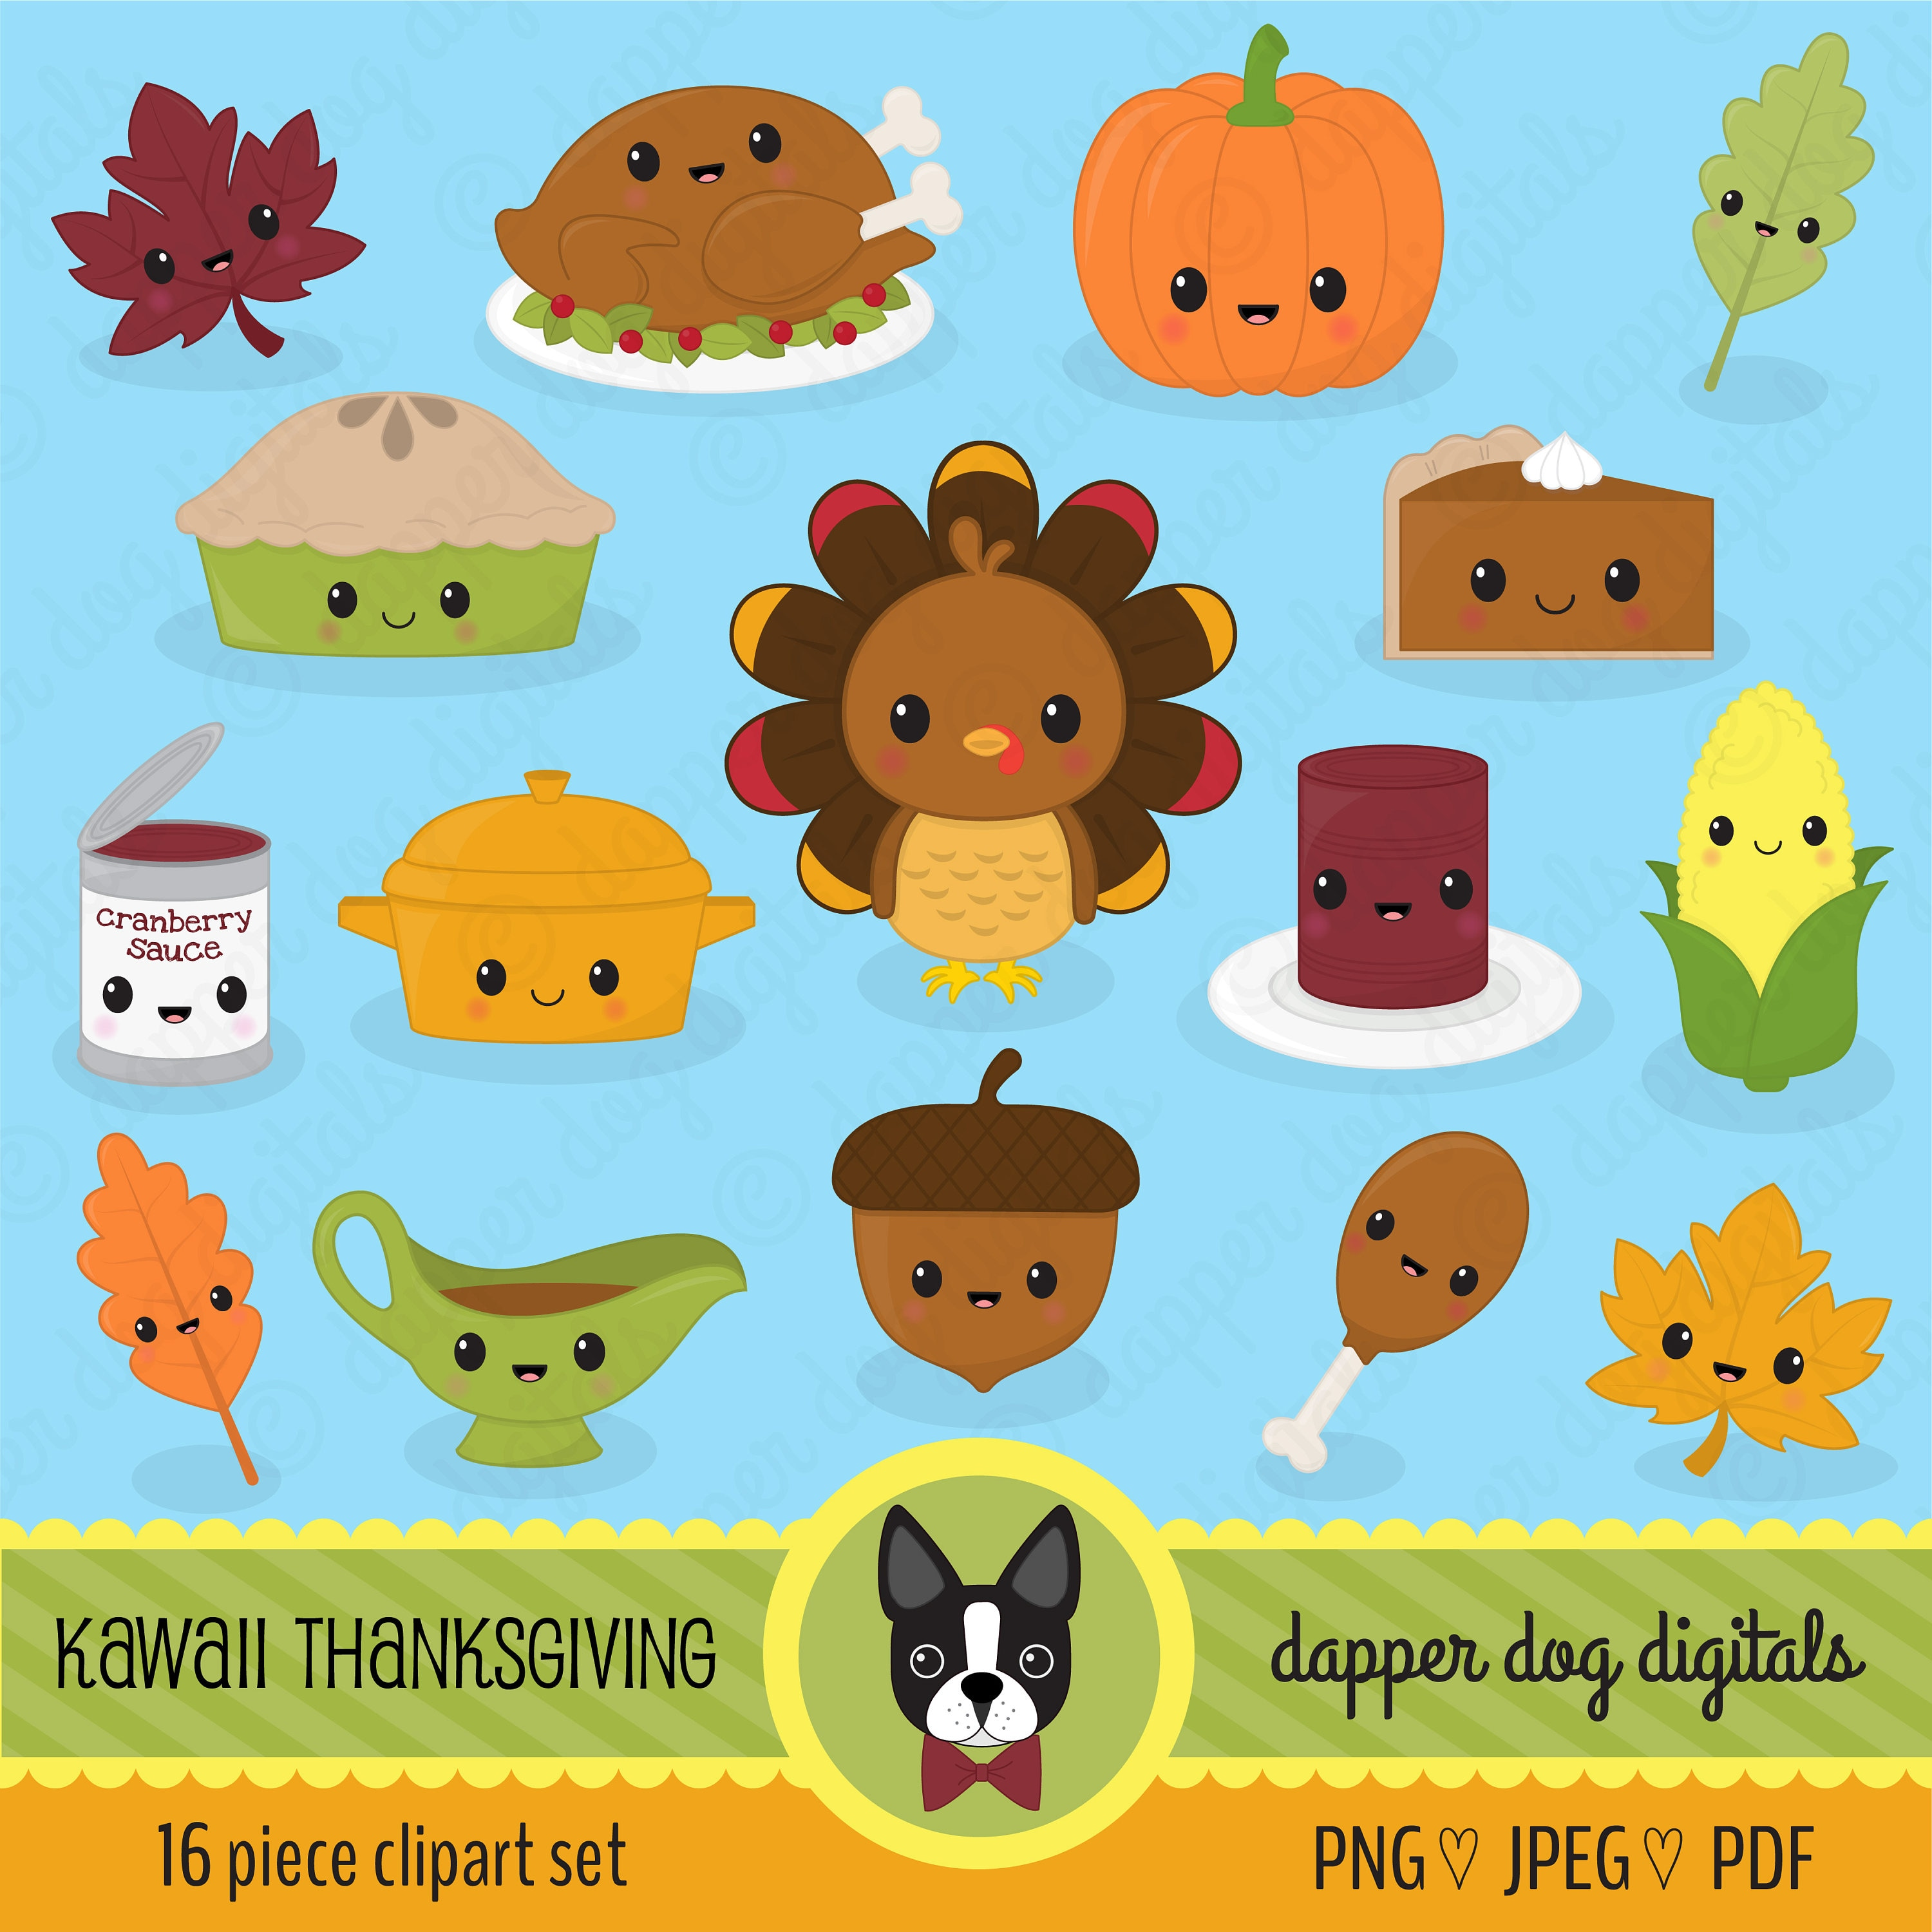 Kawaii Thanksgiving Dinner Clipart Pack Commercial Use | Etsy